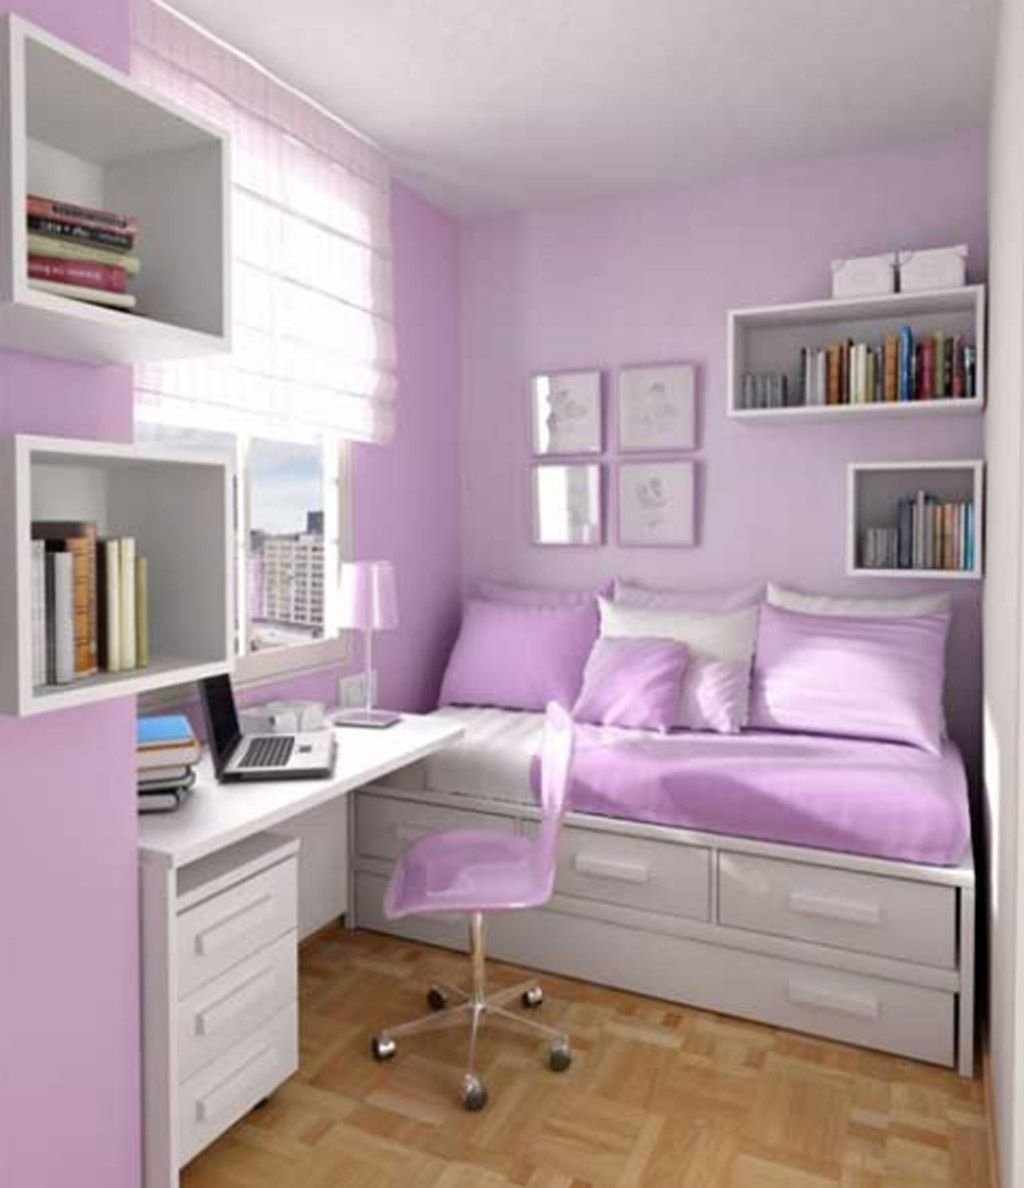 10 Stylish Small Bedroom Ideas For Girls decor for teenage bedrooms pinterest girls light purple walls and 1 2020